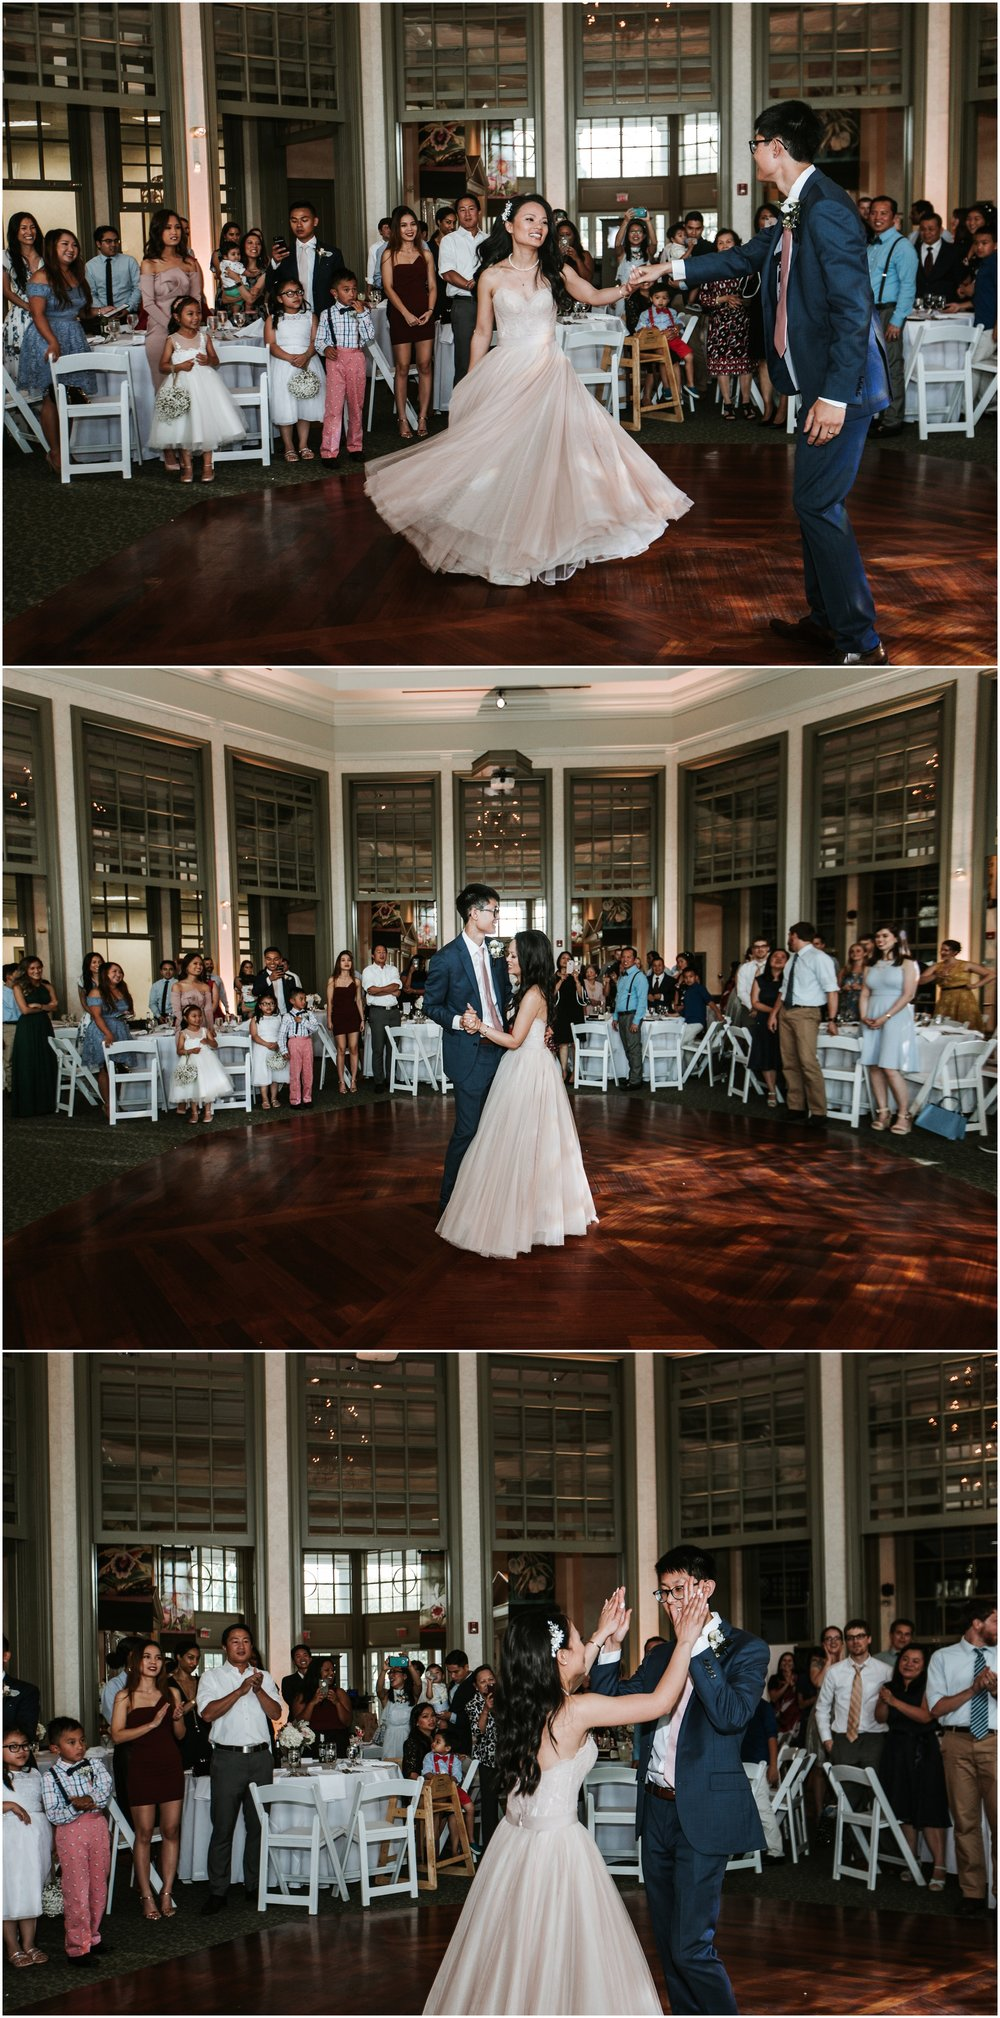 Daniel-Stowe-weddings-avonne-photography56.JPG